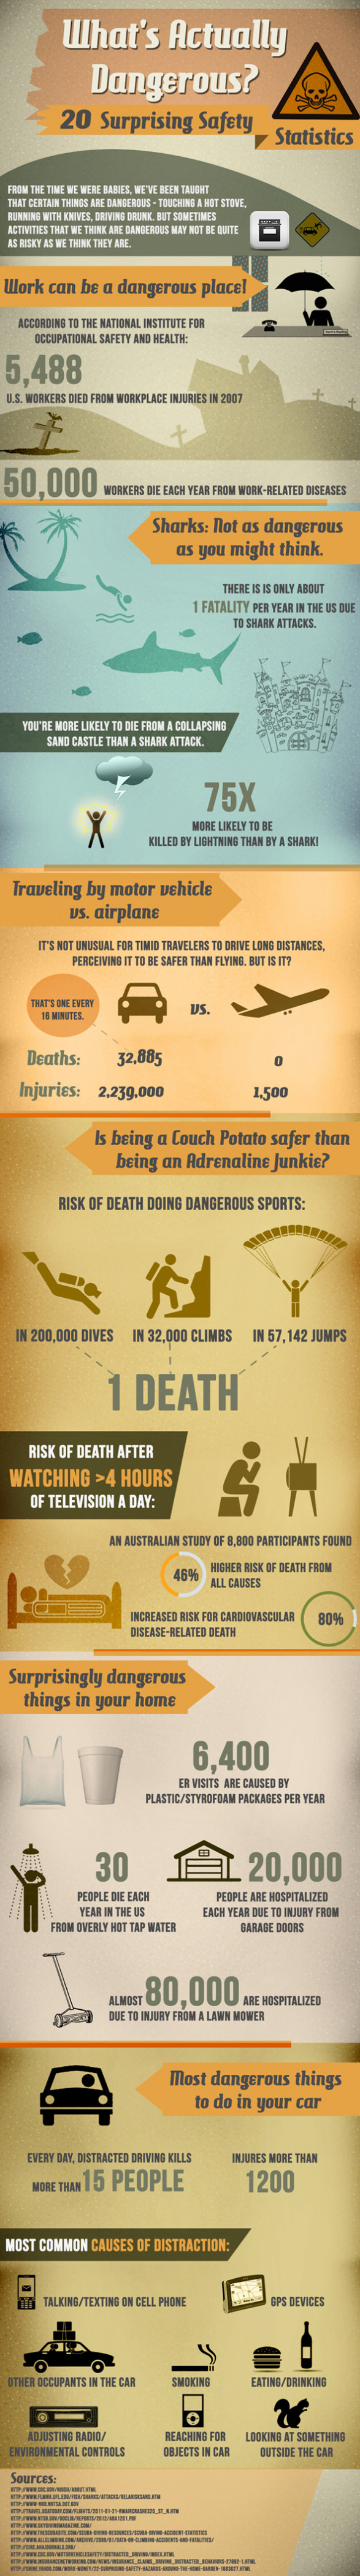 What�s Actually Dangerous? 20 Surprising Safety Statistics